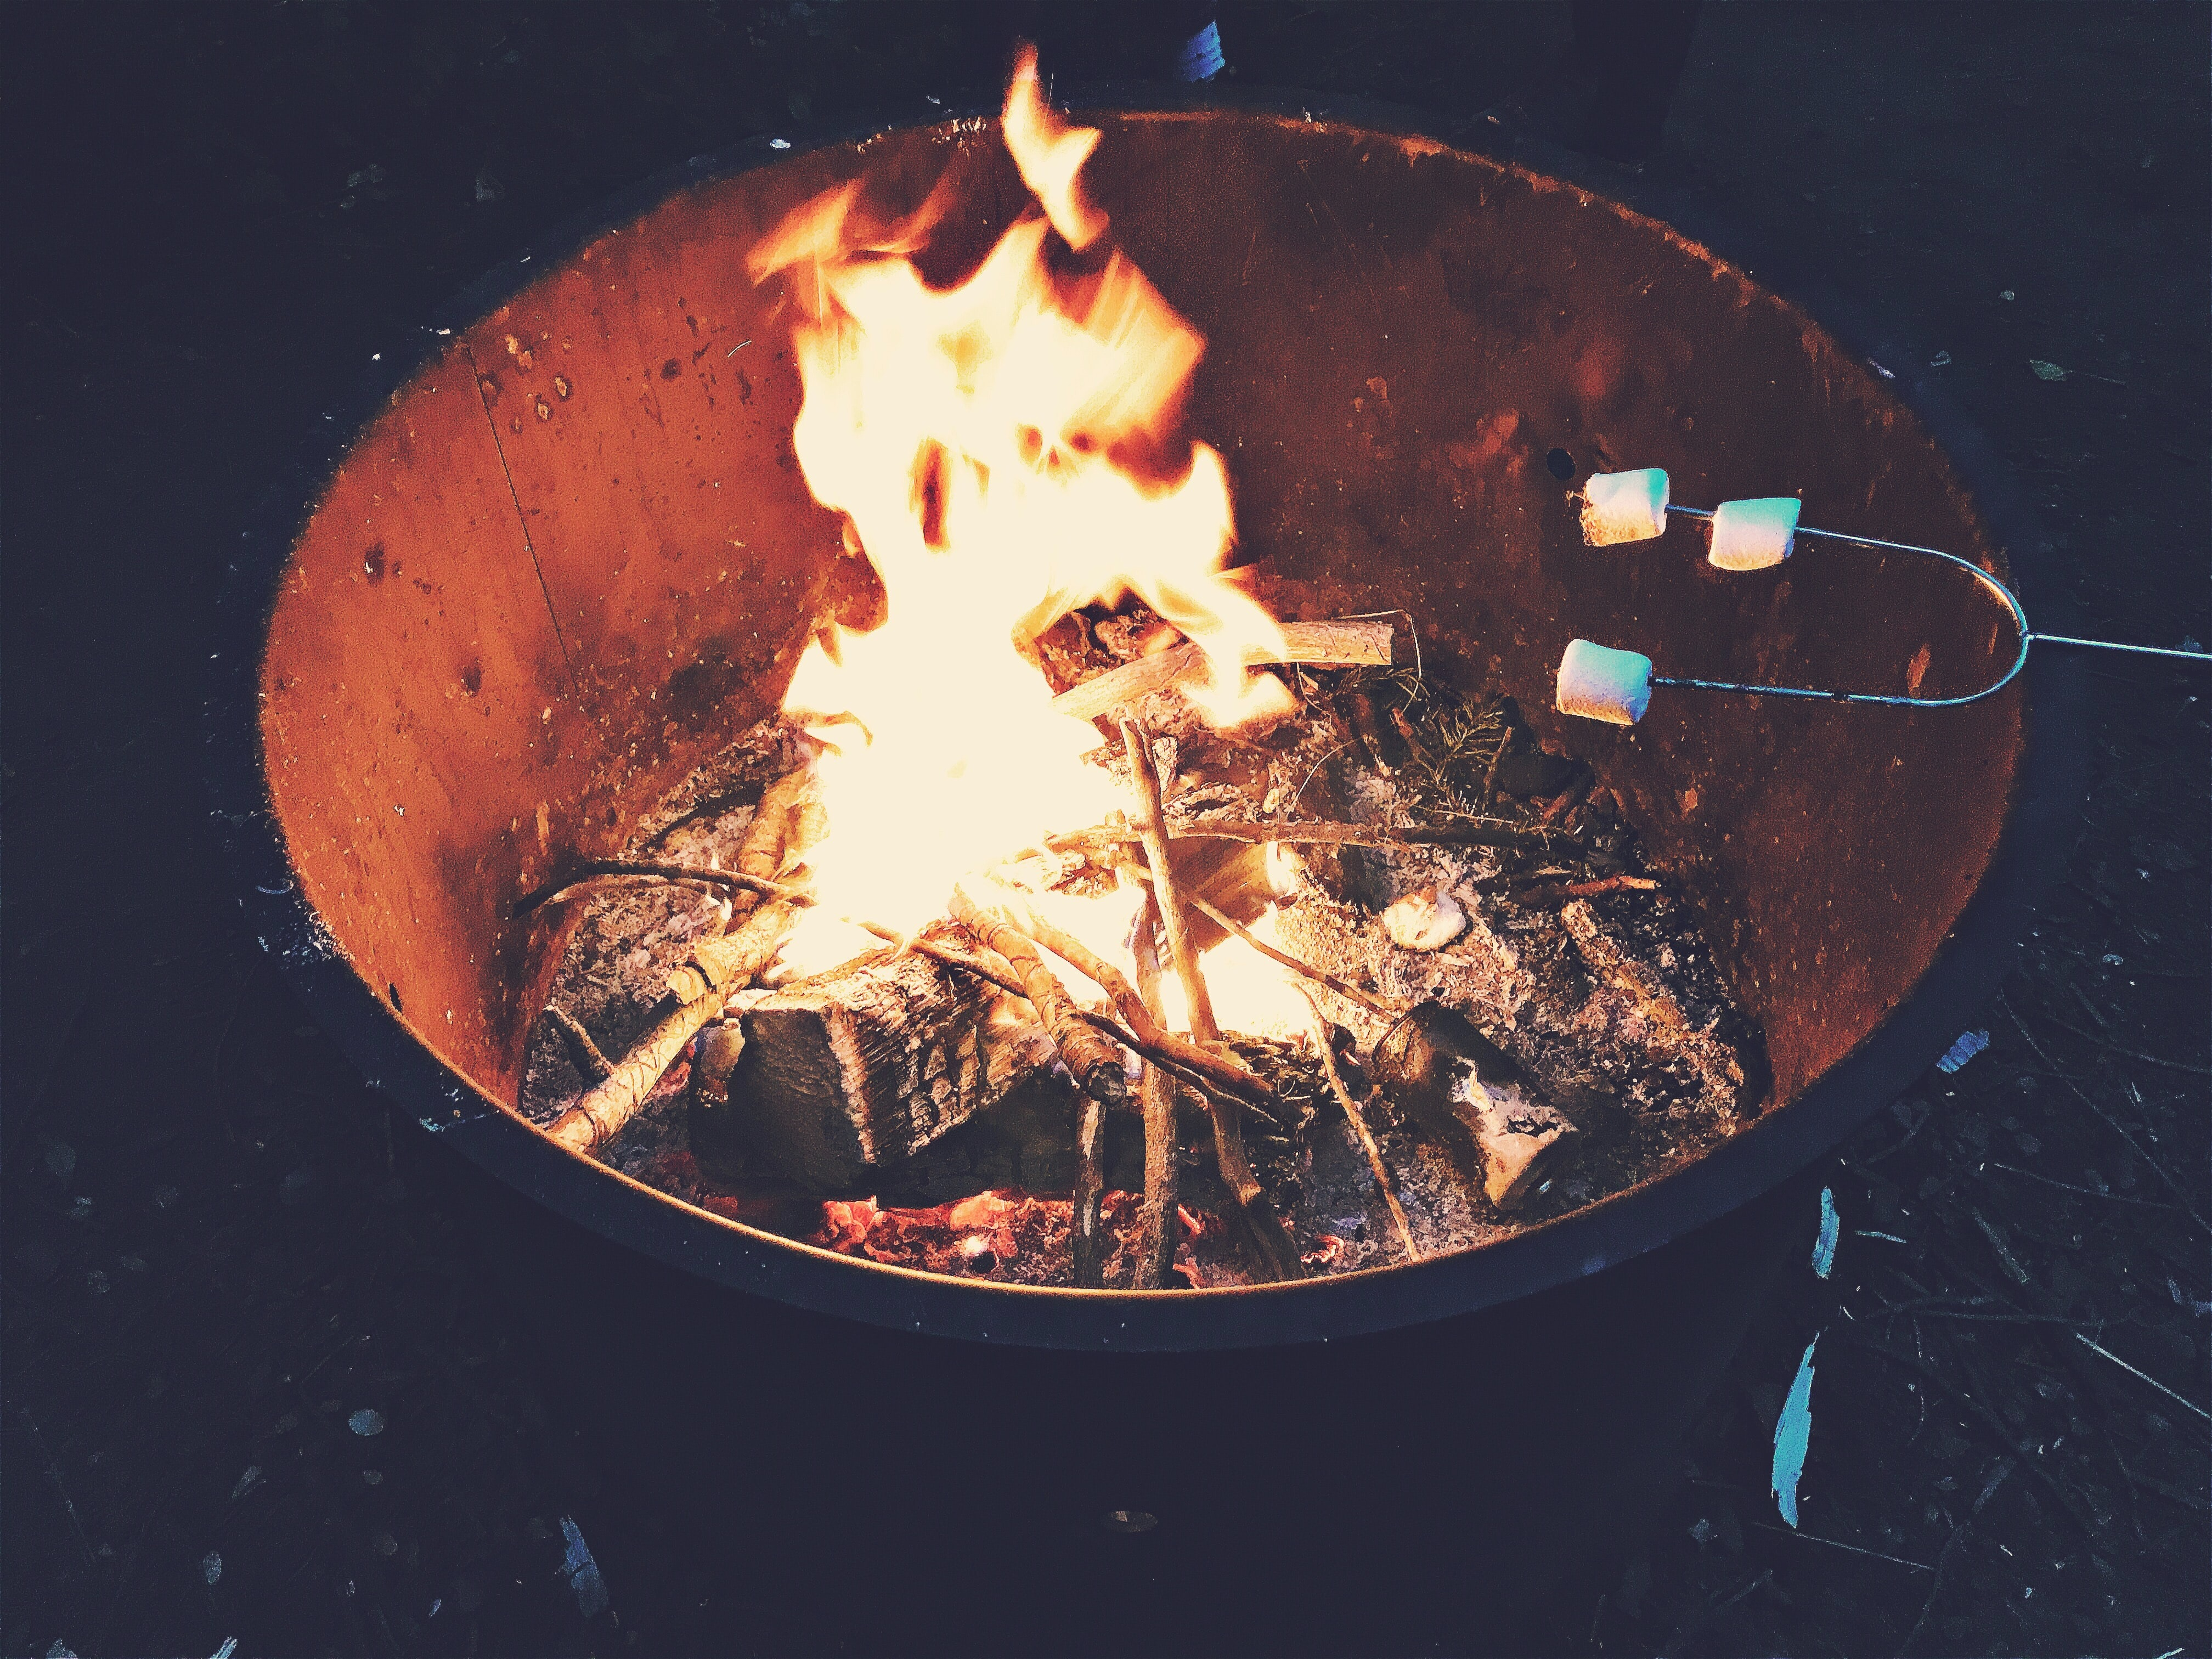 Roast marshmallows on an open flame in your own backyard, the safe way!